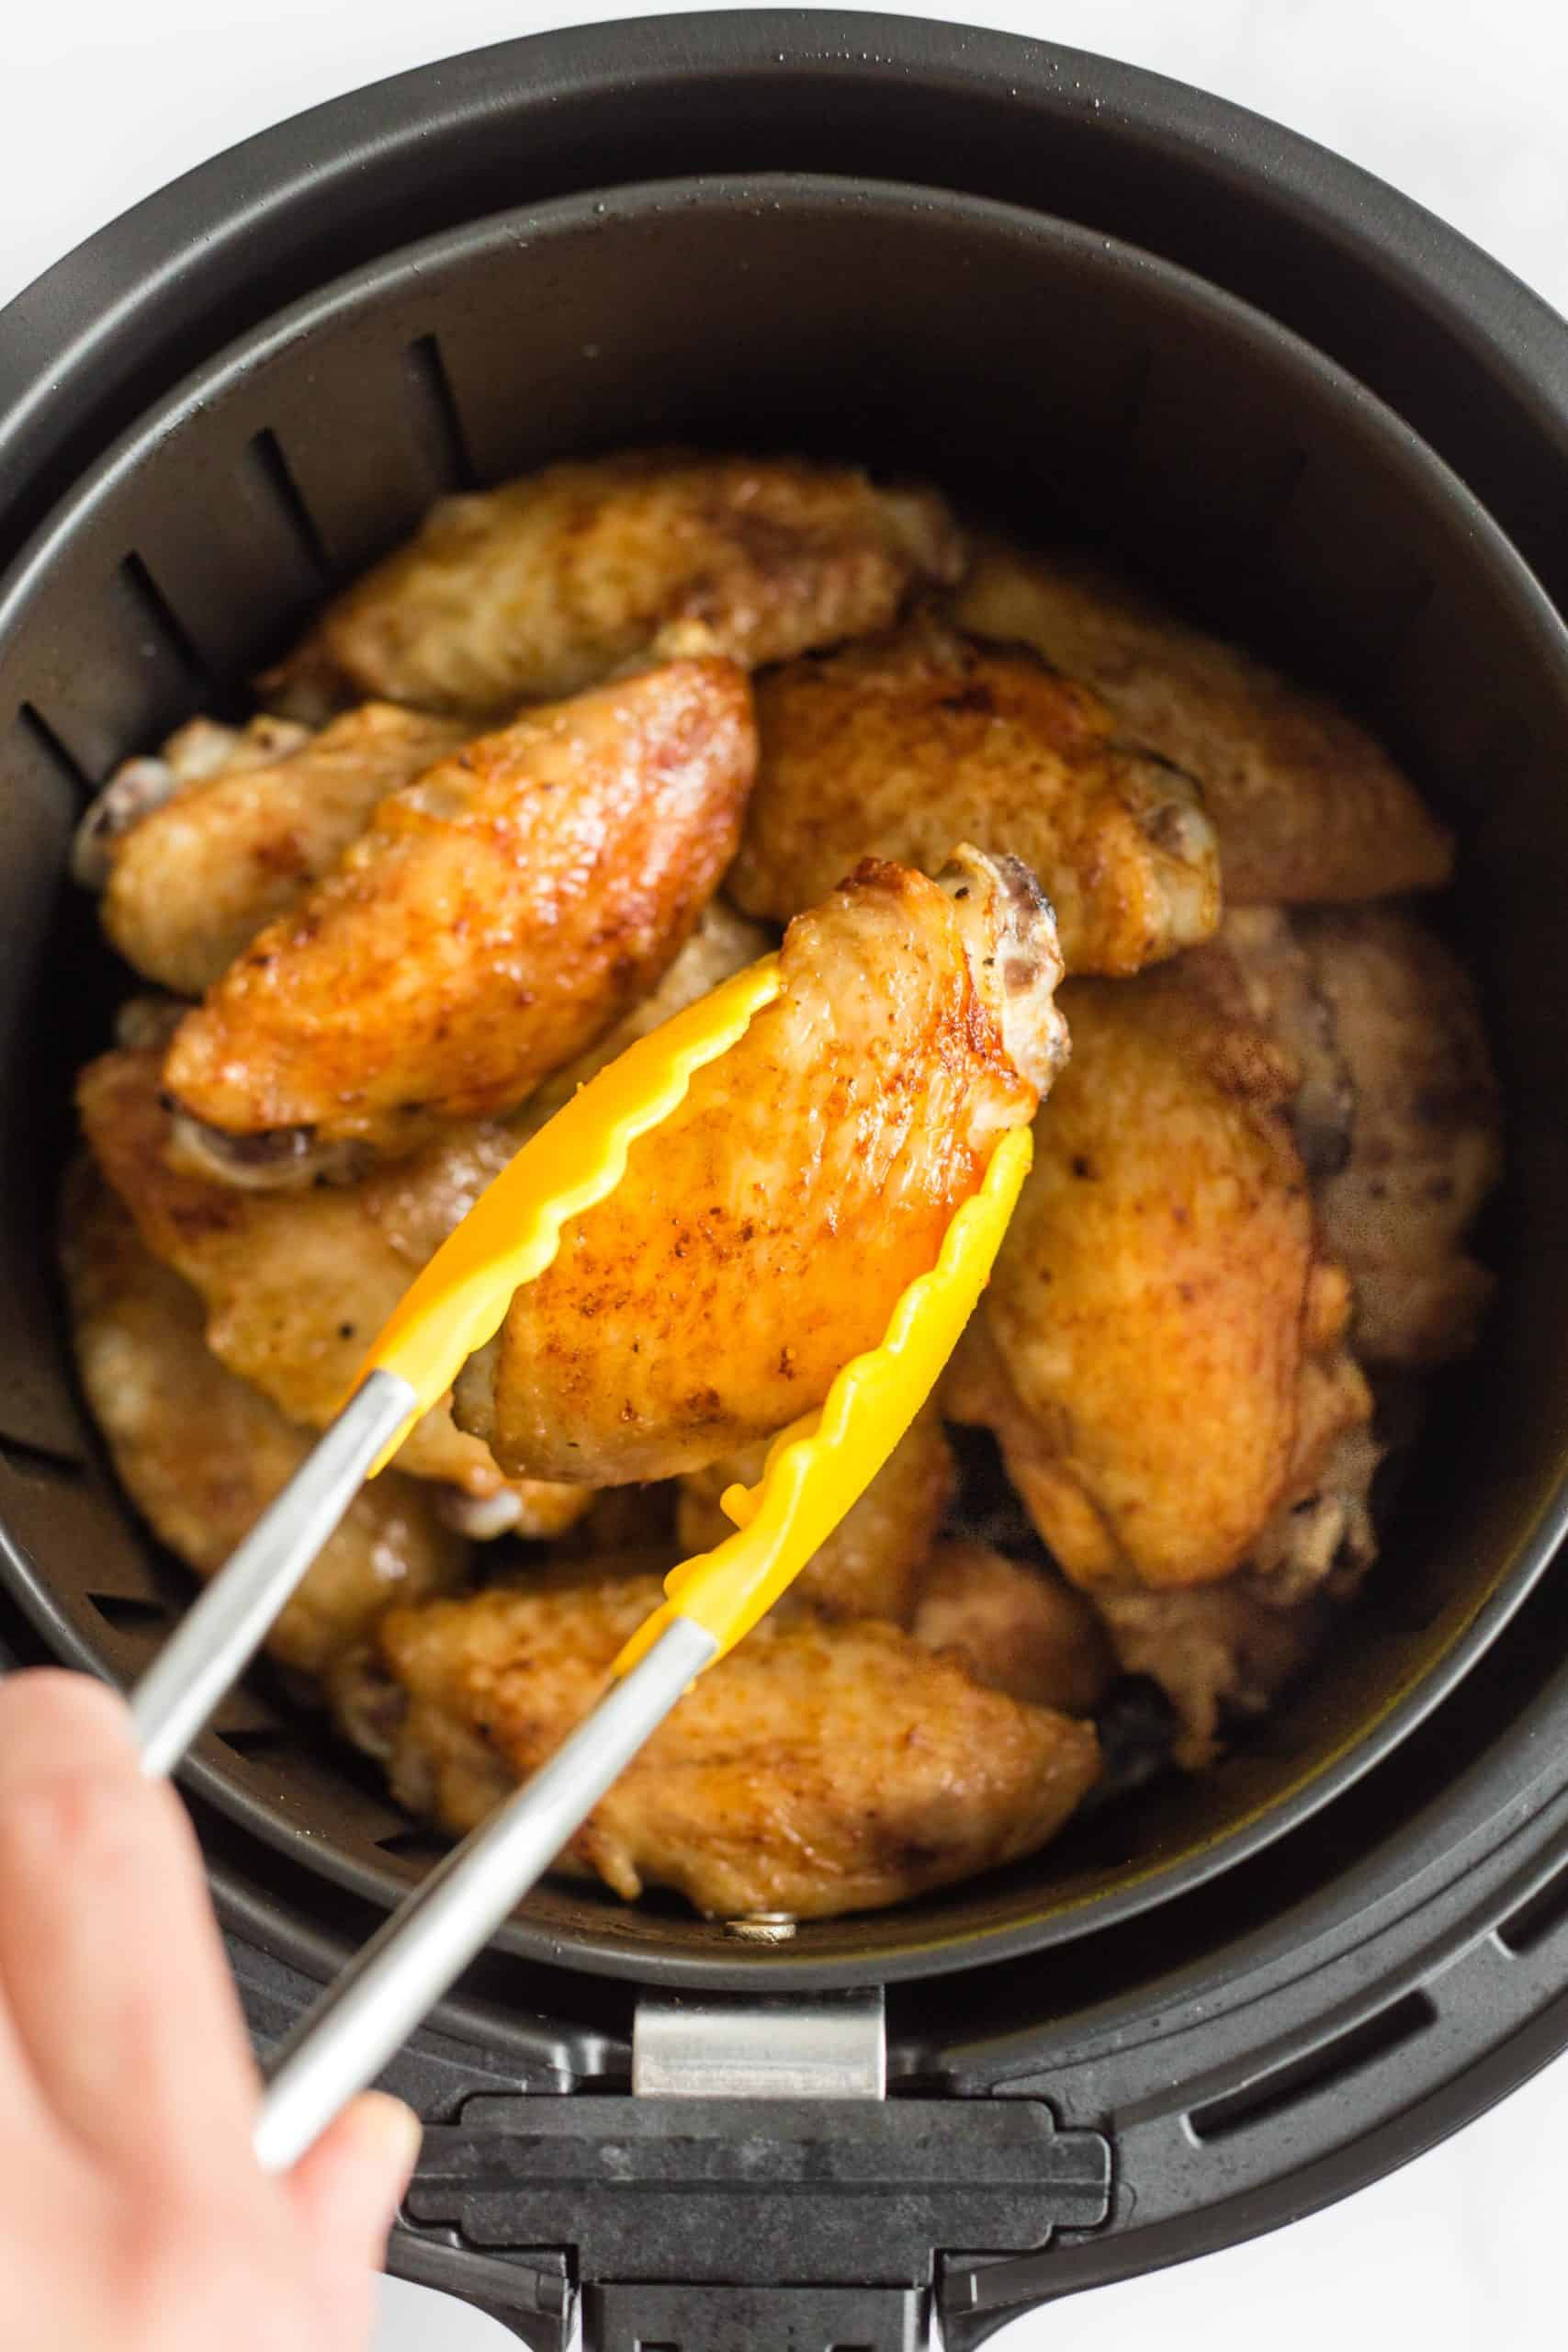 Picking up a crispy chicken wing from the air fryer basket.